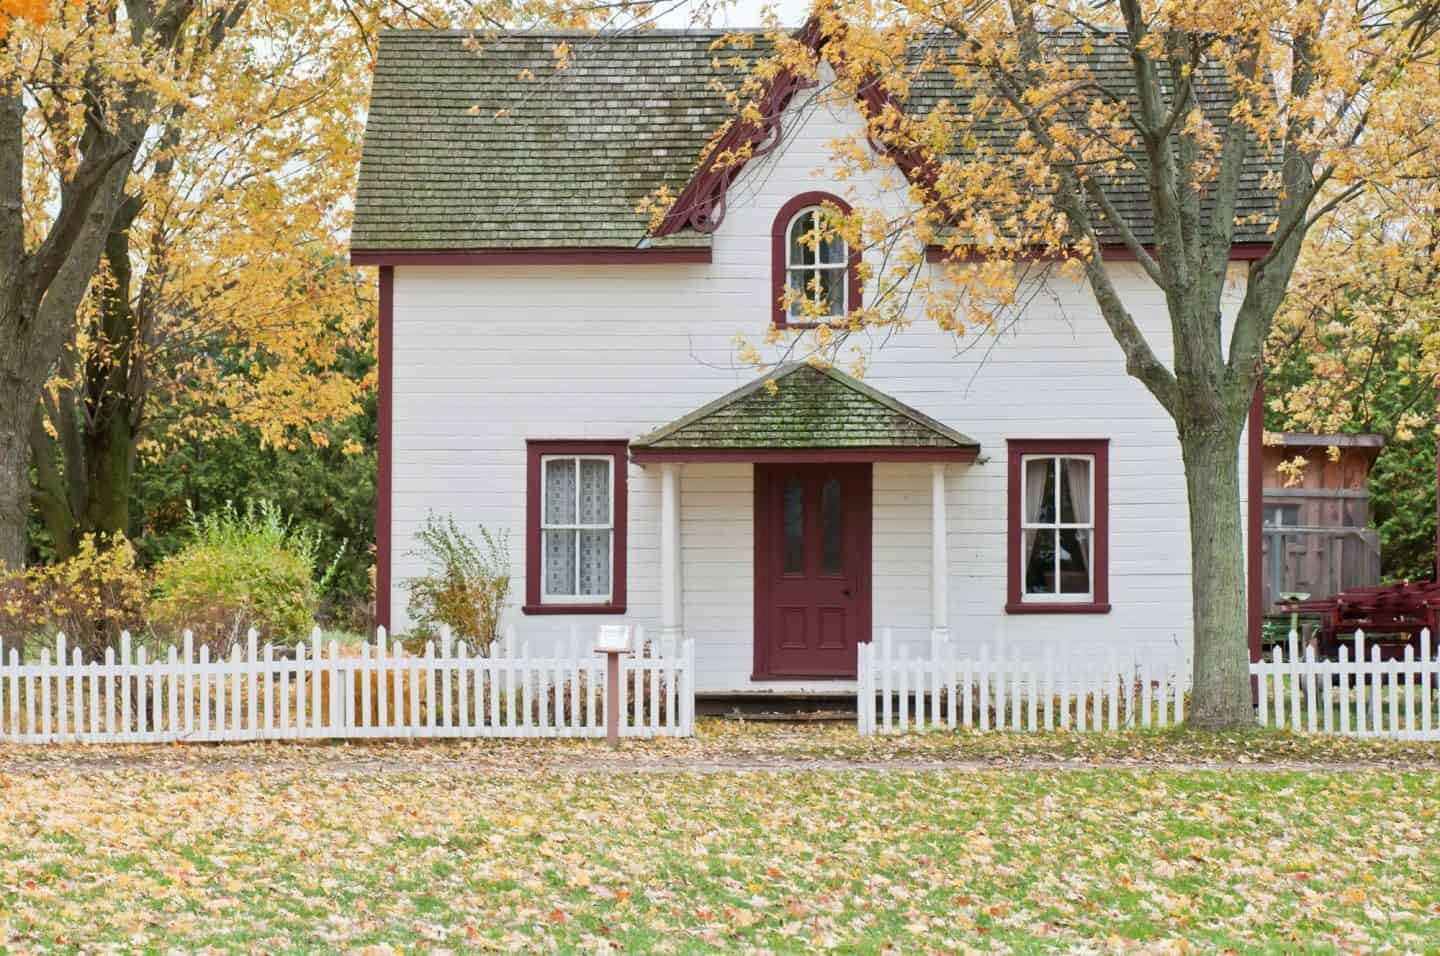 A beautiful detatched home in the atumn with orange leaves falling from the trees and scattered on the floor.